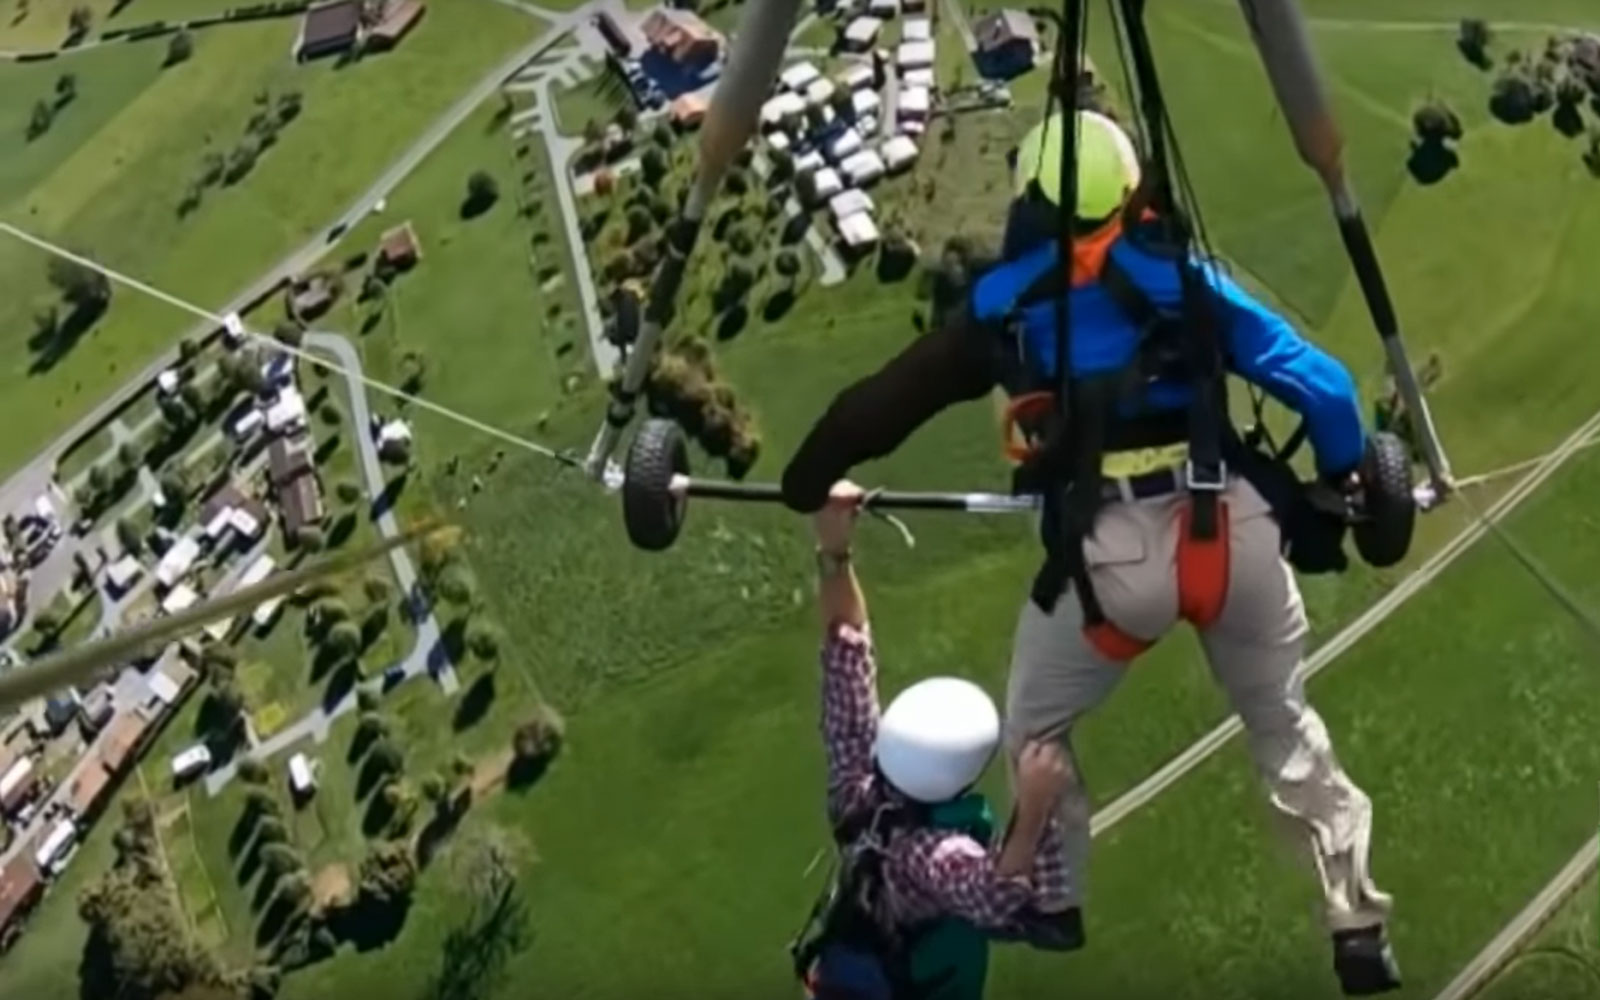 Watch This Hang Glider Hang on for Dear Life after Instructor